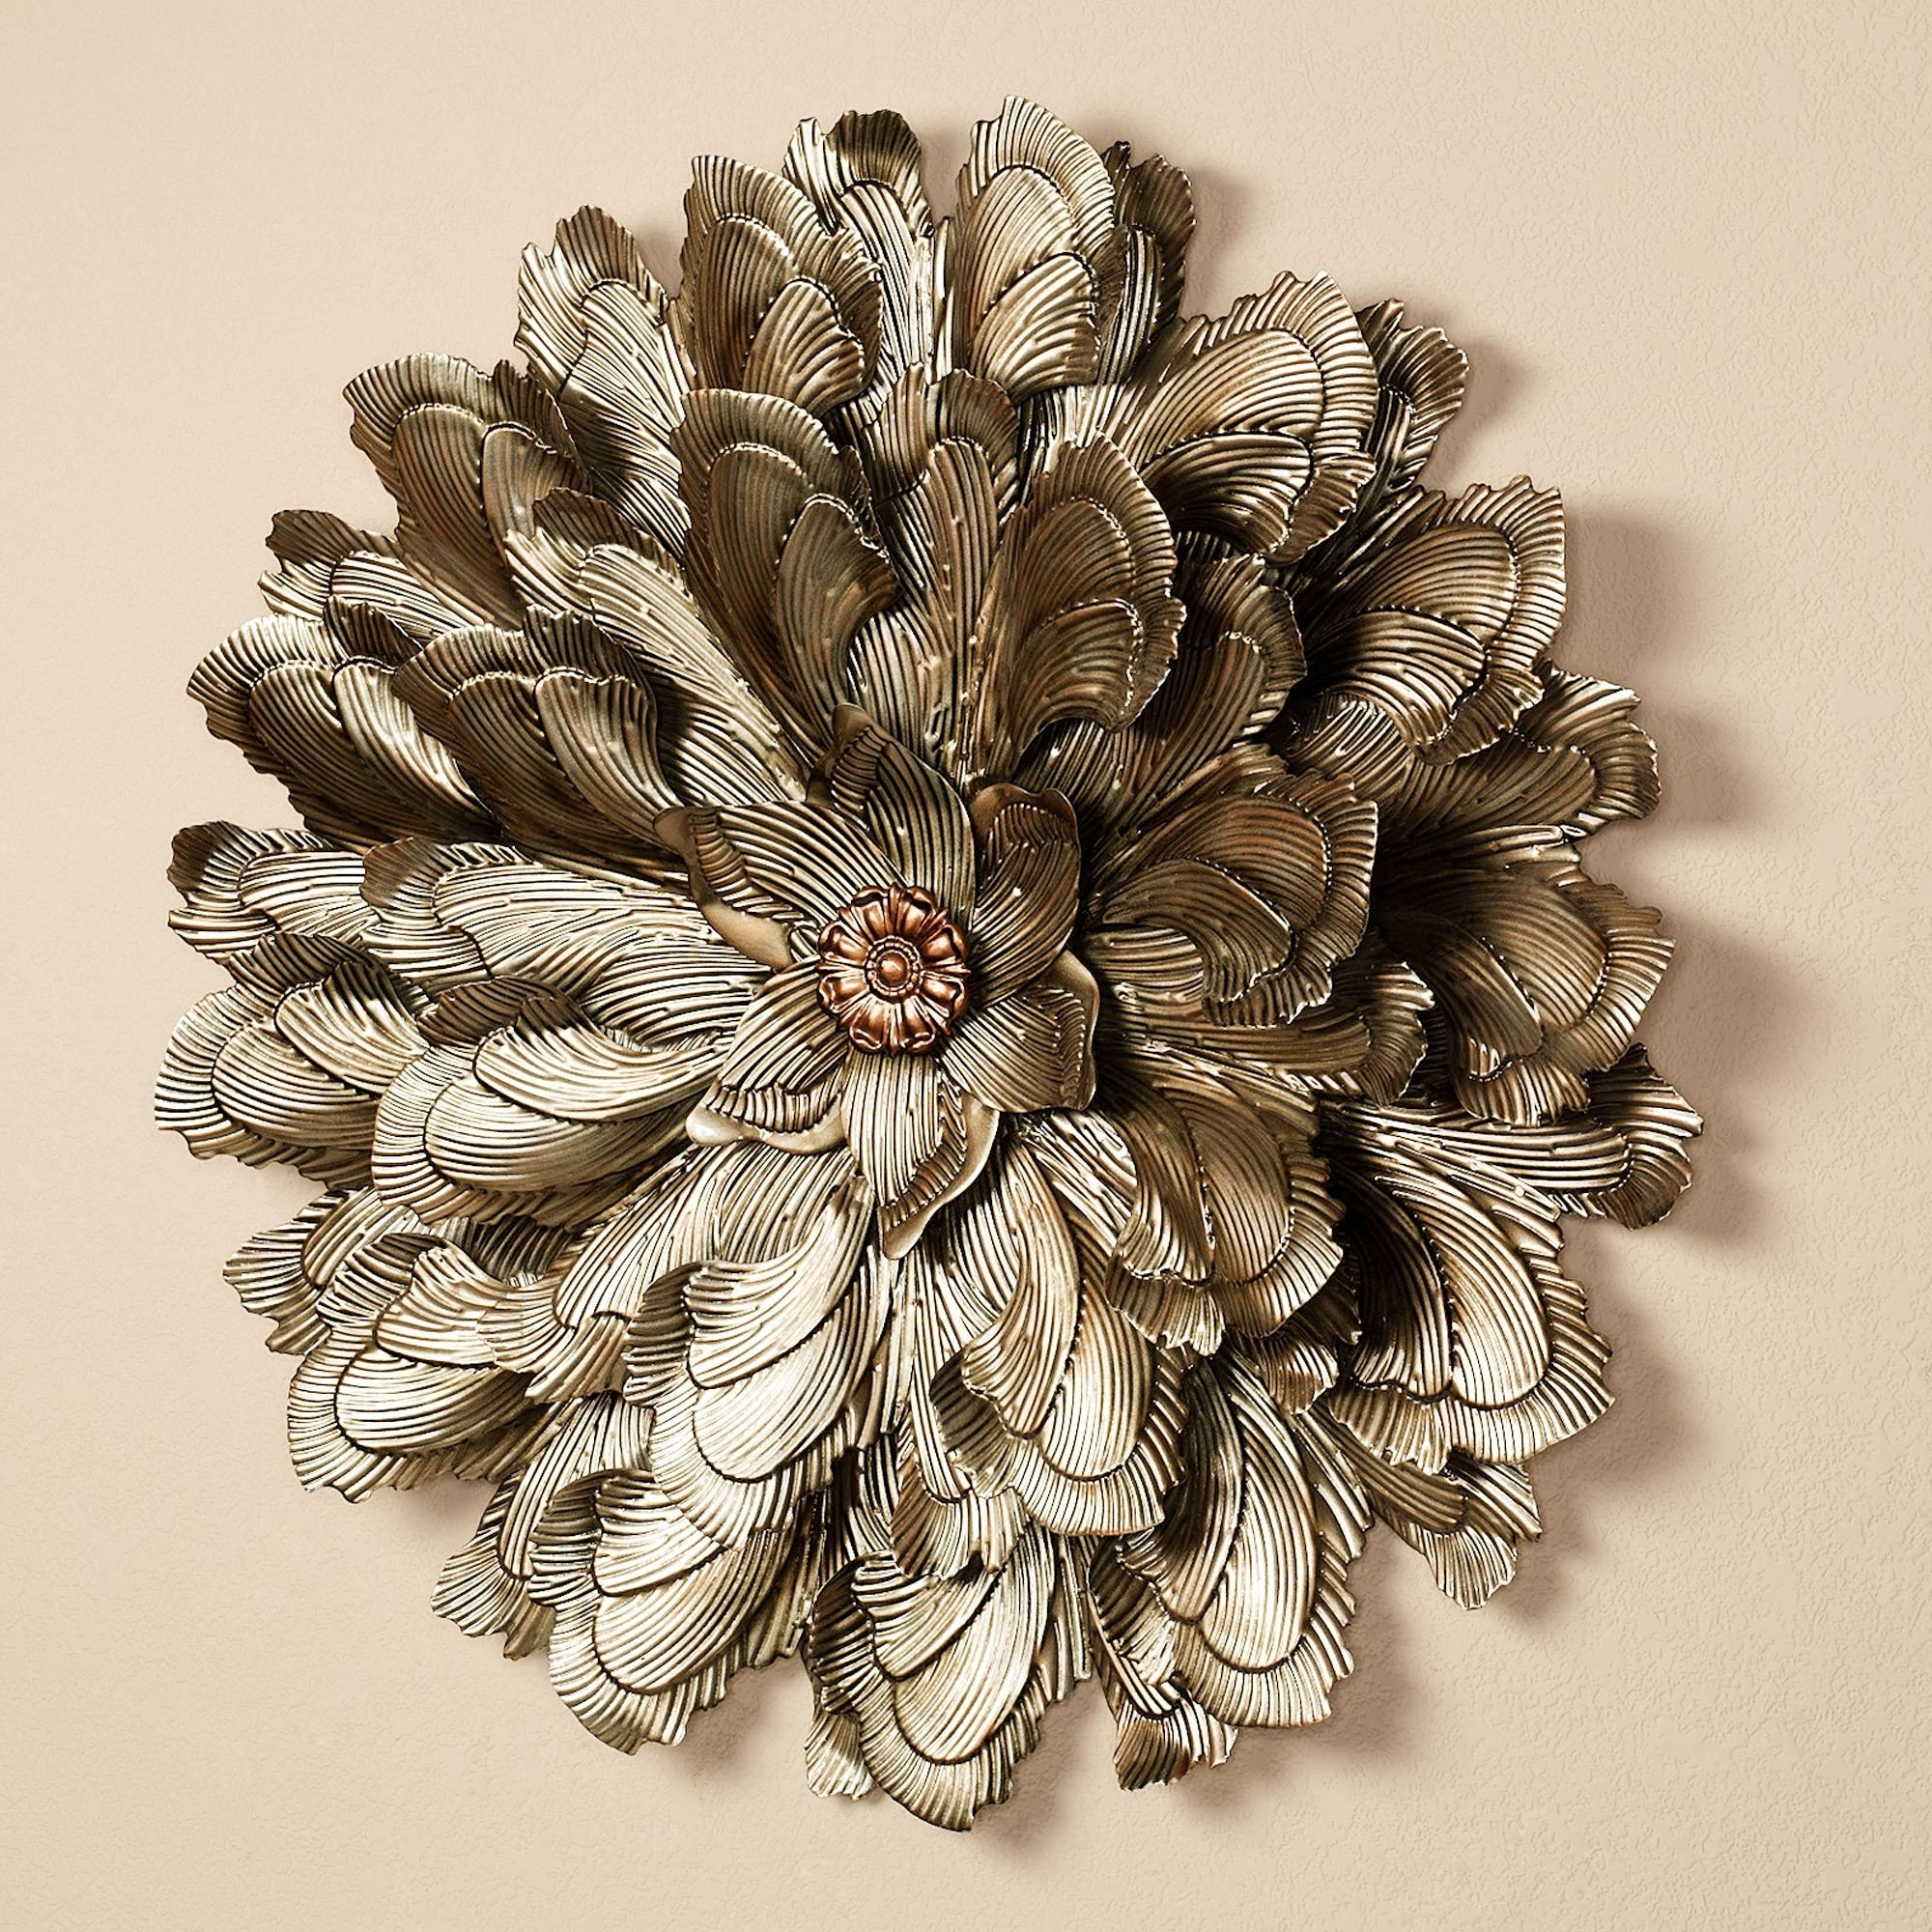 Cheap Metal Wall Art Intended For Popular Delicate Flower Blossom Metal Wall Sculpture (View 6 of 15)